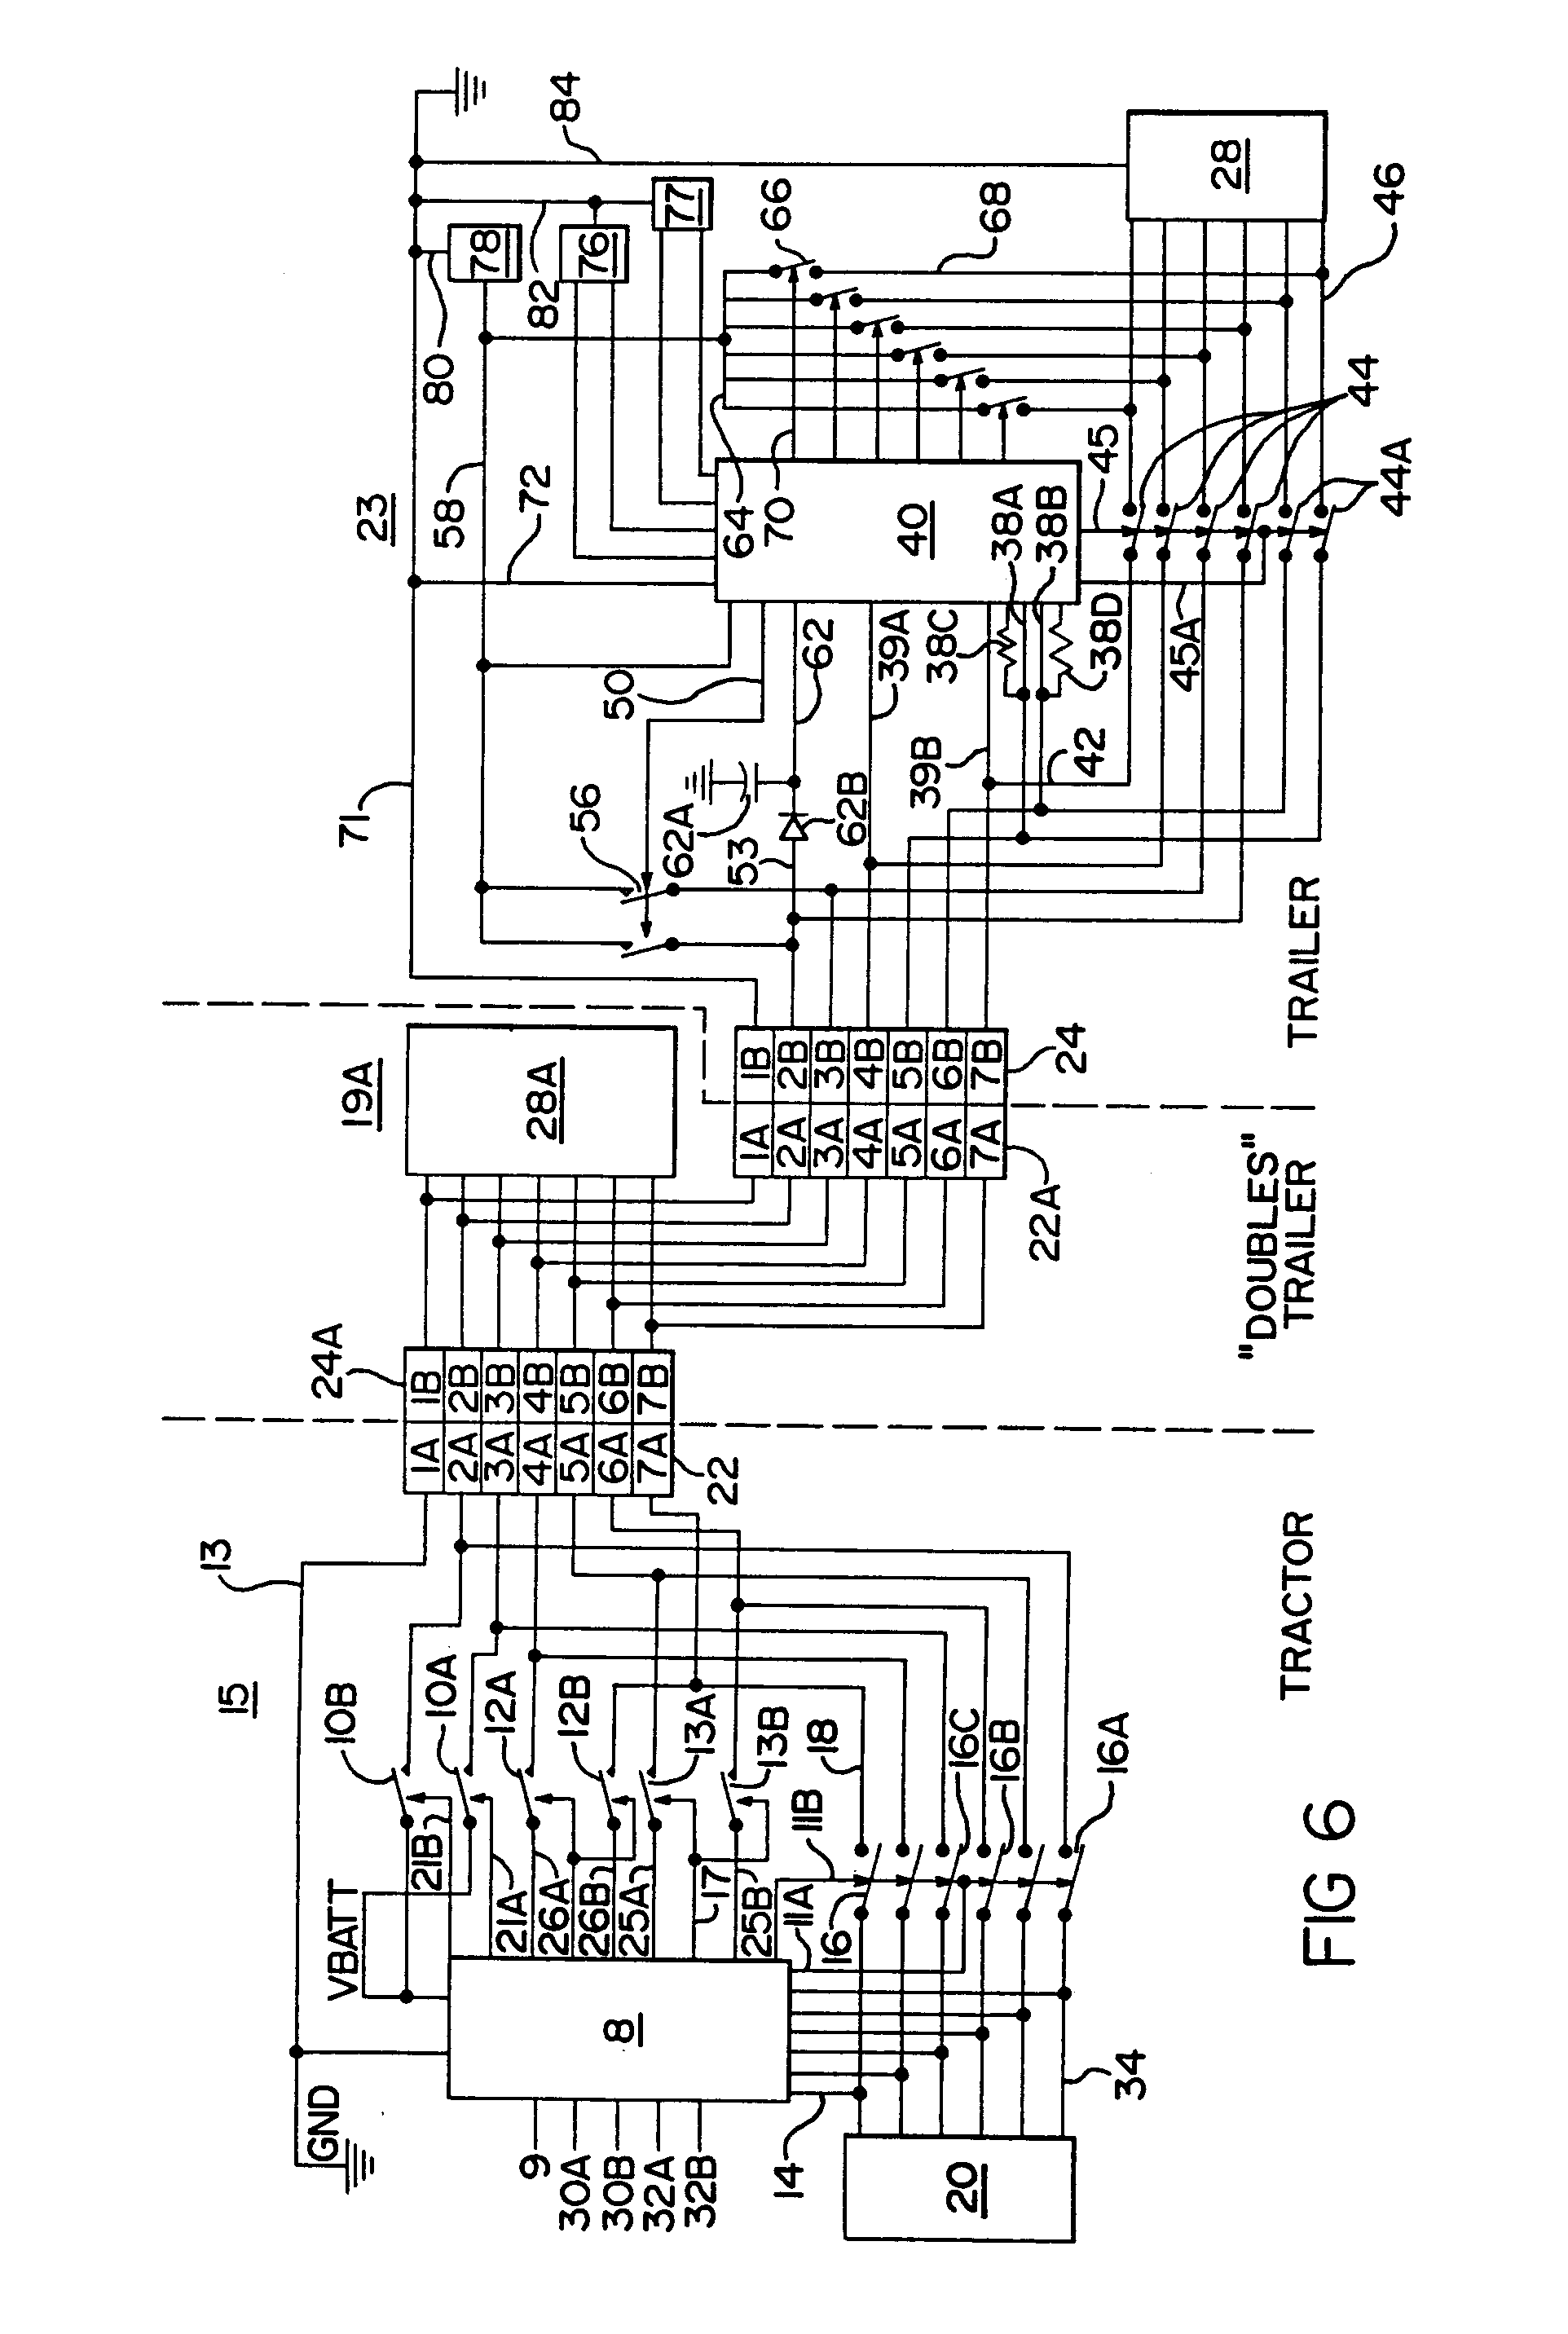 WRG-0626] Bendix Wiring Diagrams on